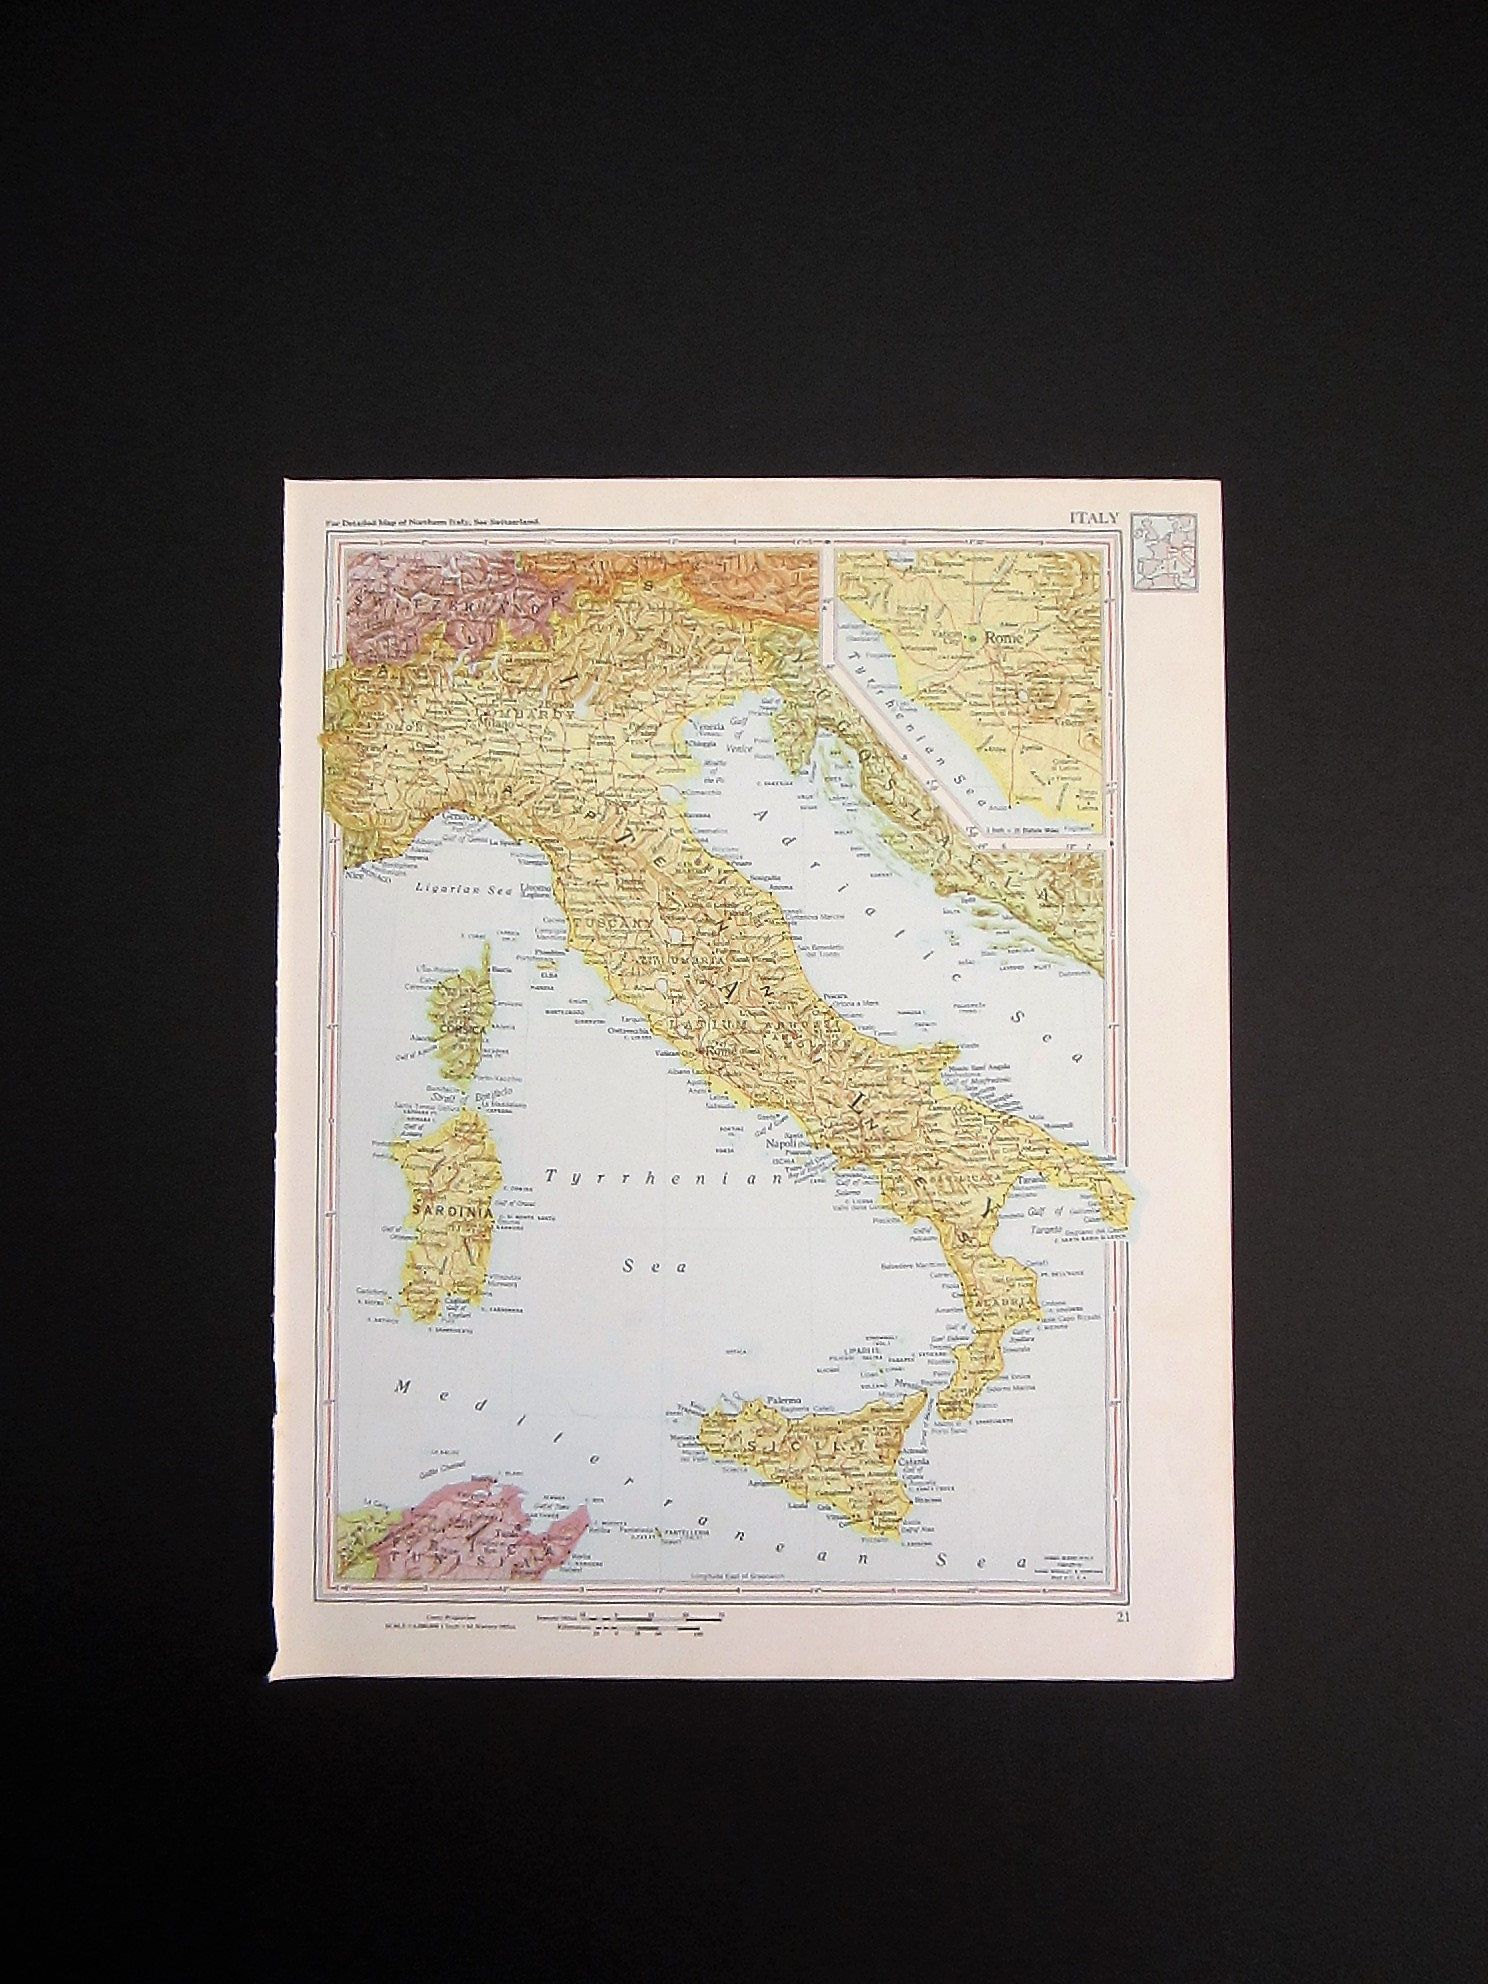 1960 map of italy vintage map wall art italy wall art vintage 1960 map of italy vintage map wall art italy wall art vintage atlas gumiabroncs Choice Image